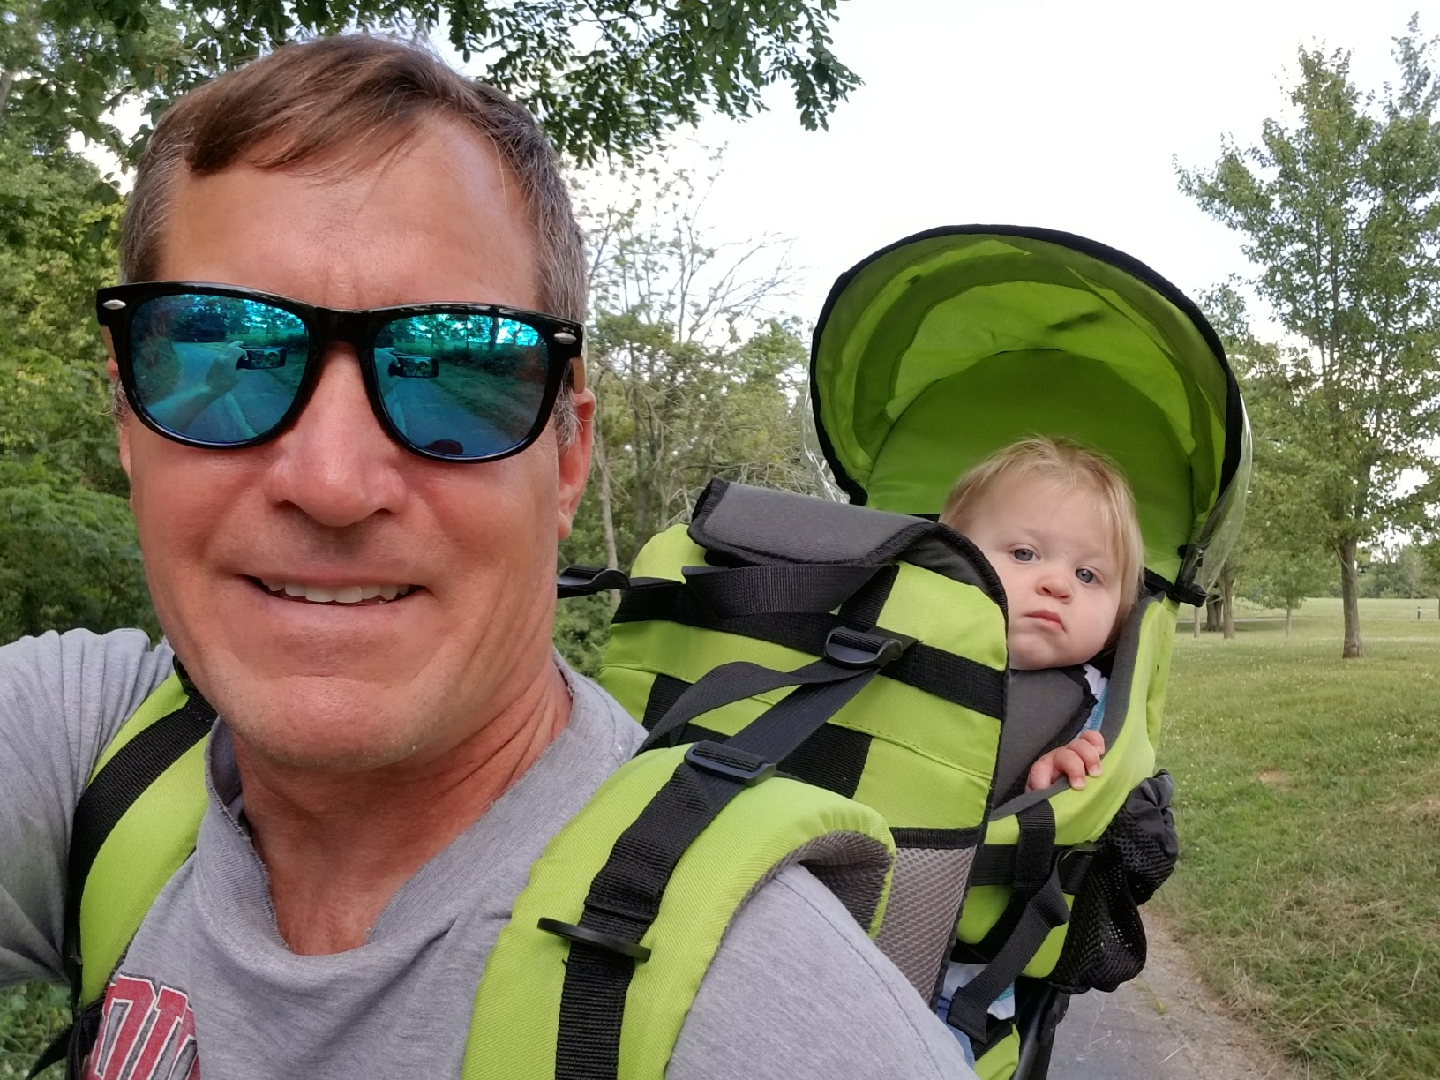 The backpack was Banjo's birthday gift from Grandpa Mike and Grandma Julie! Here you can see Banjo and Grandpa trying it out right before we left for Malawi!